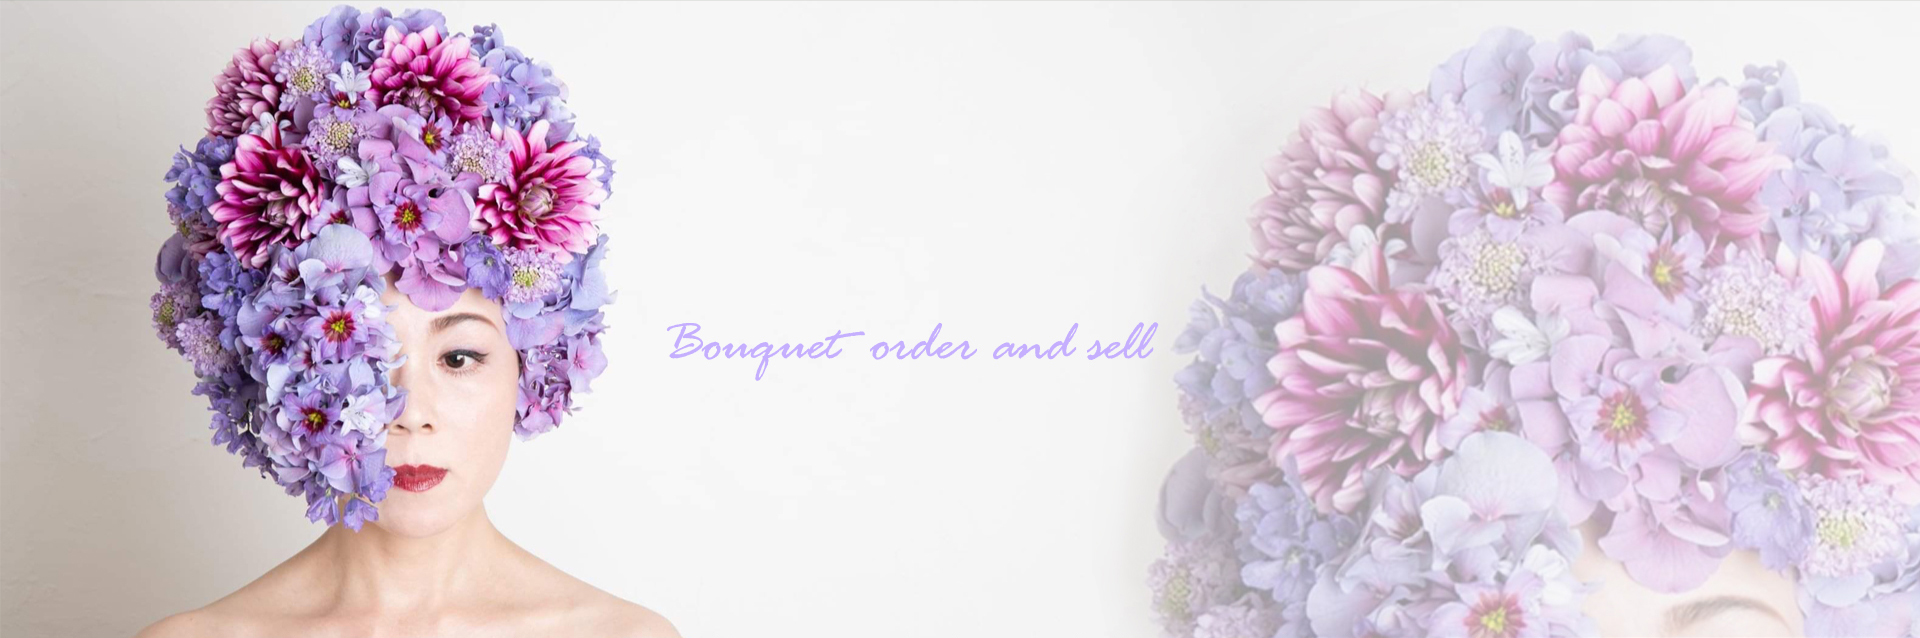 Bouquet order and sell